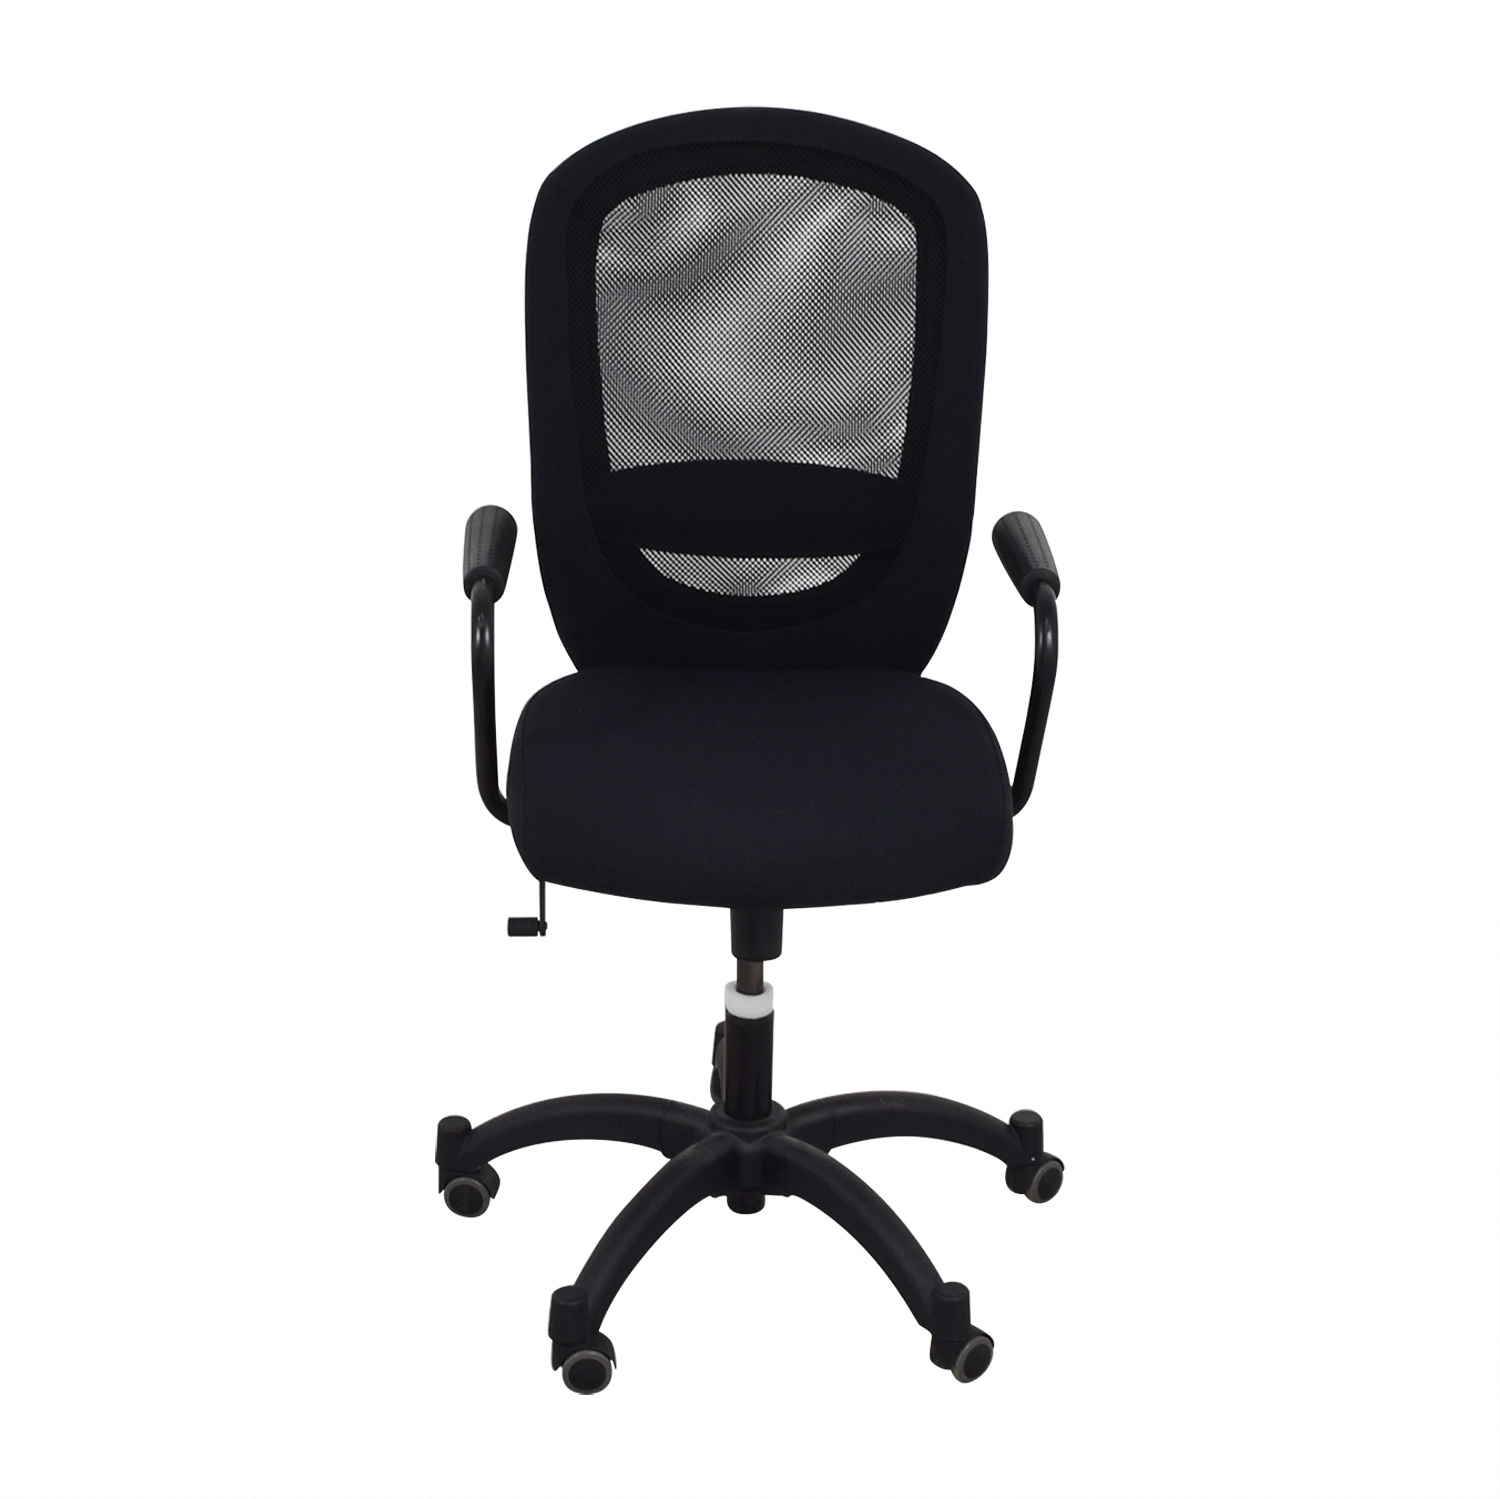 IKEA Vilgot Office Chair / Chairs